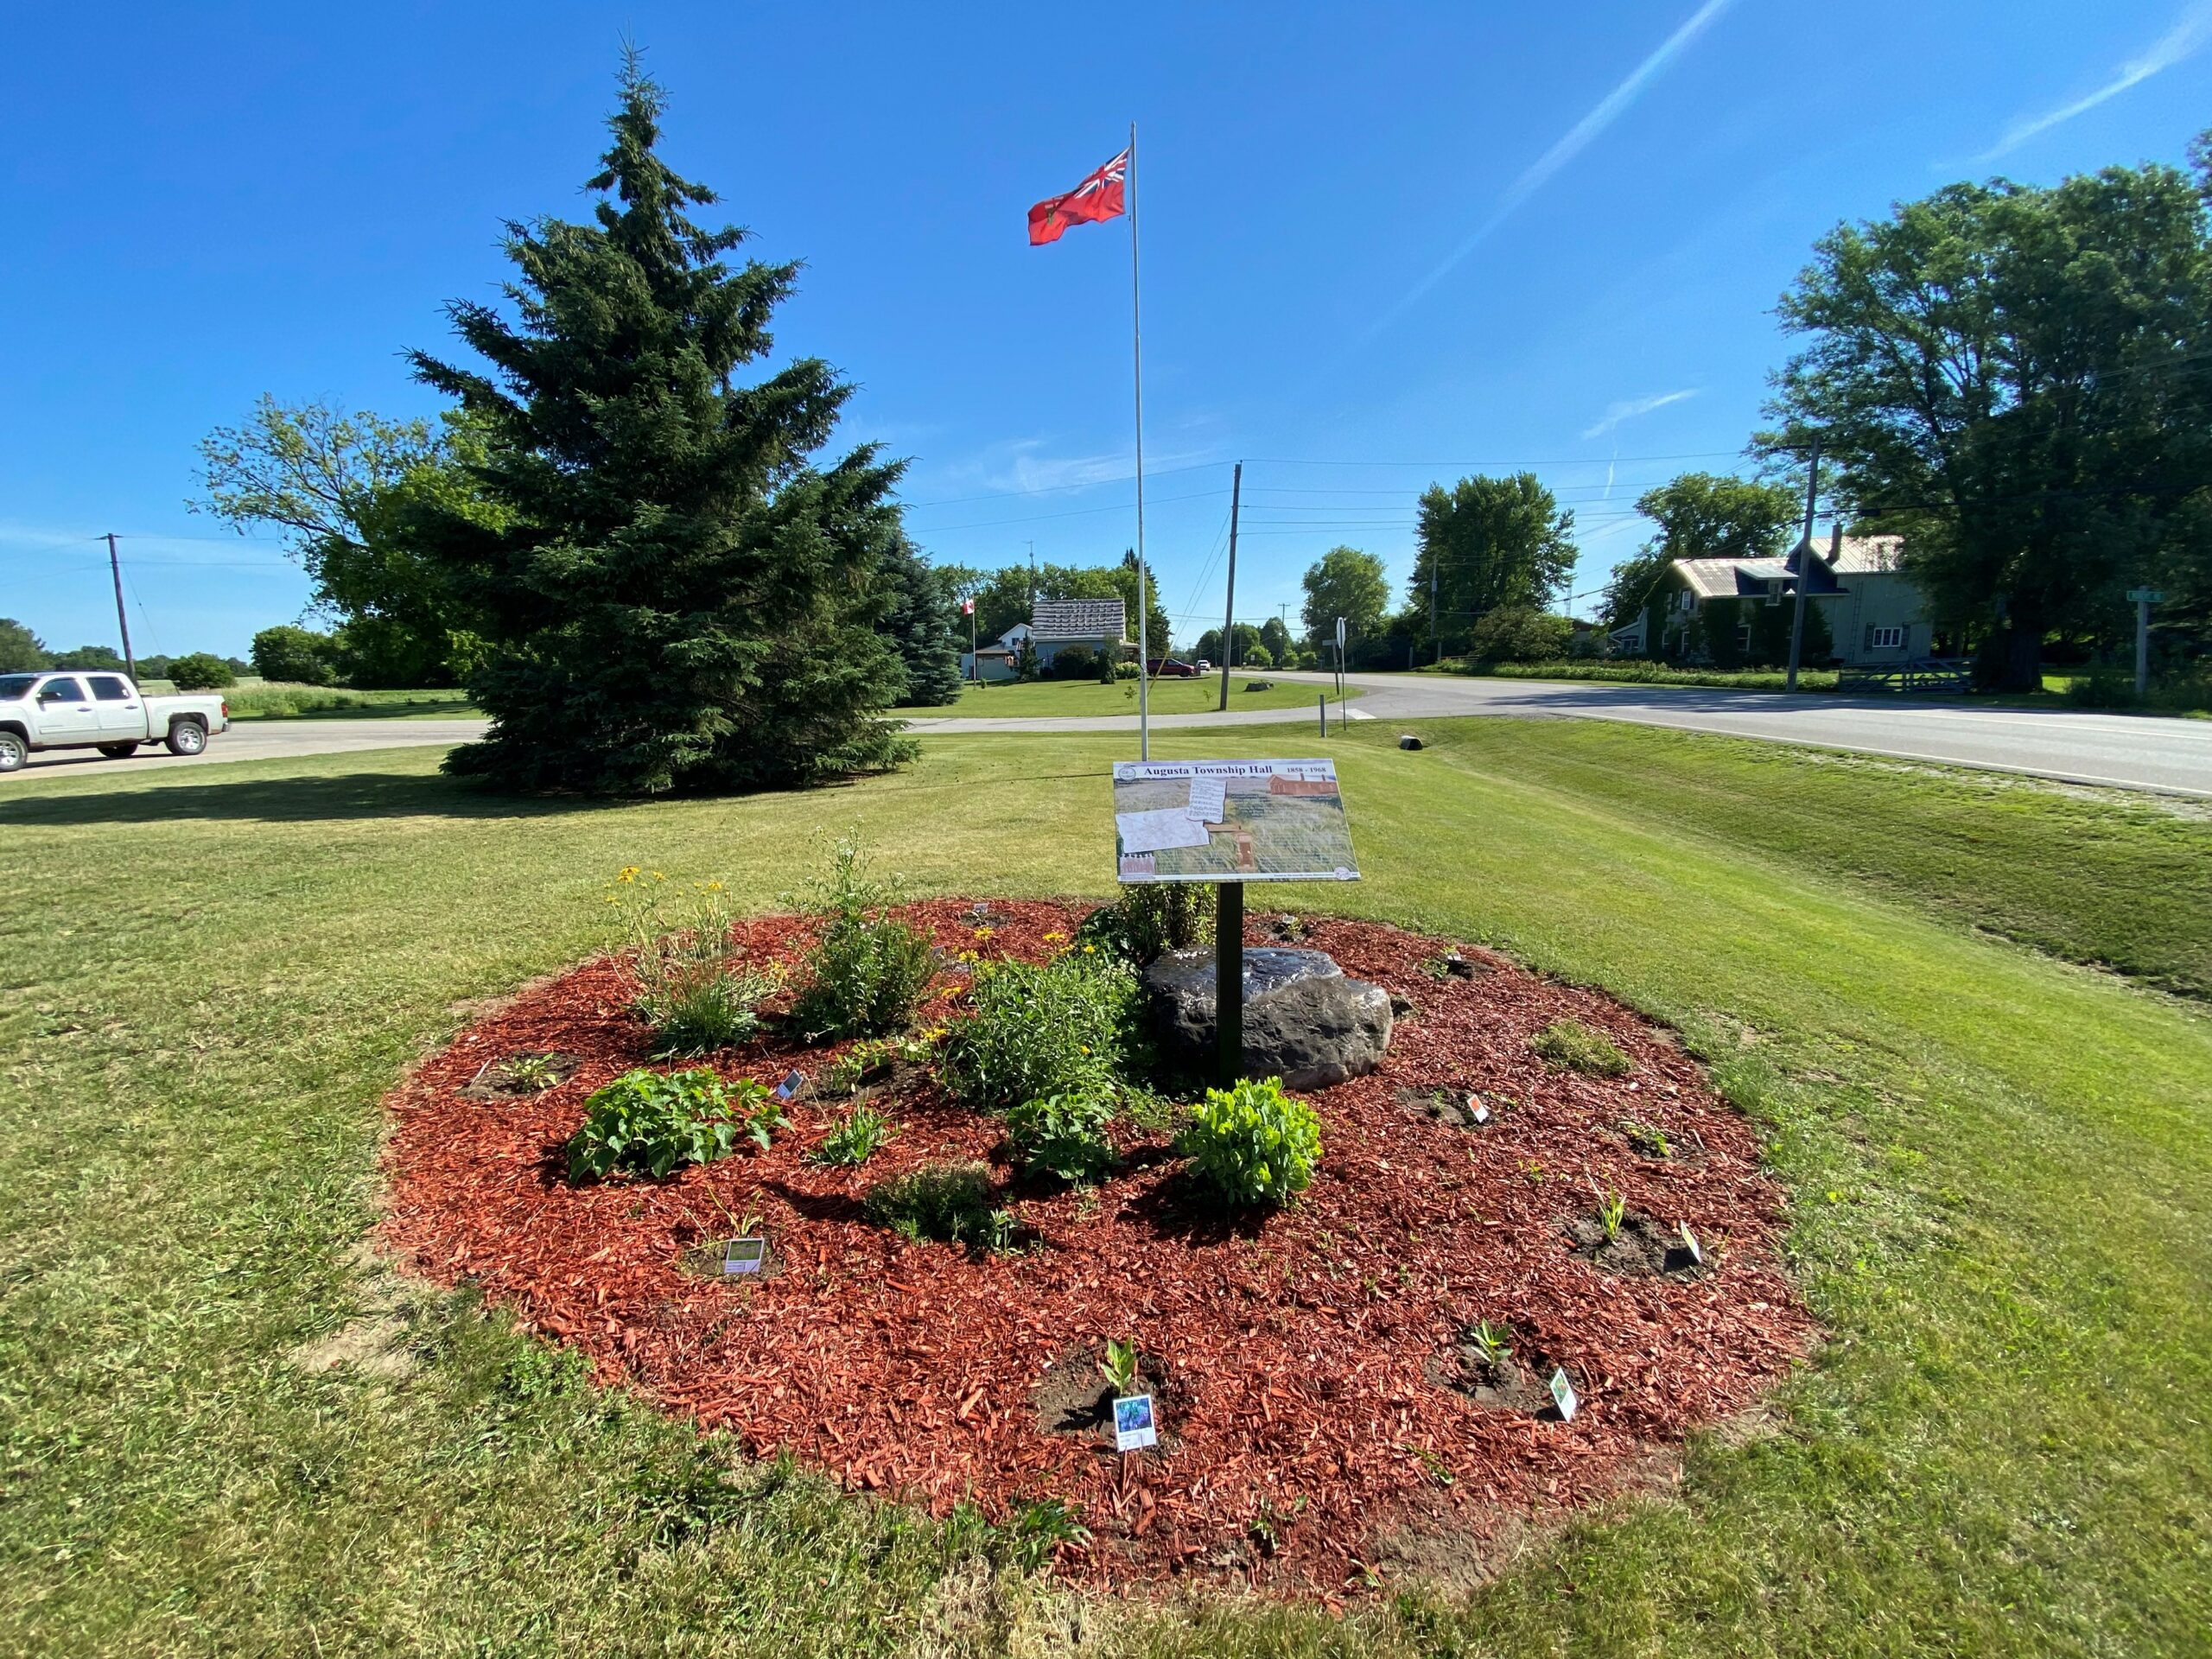 pollinator garden in front of the township office in Maynard